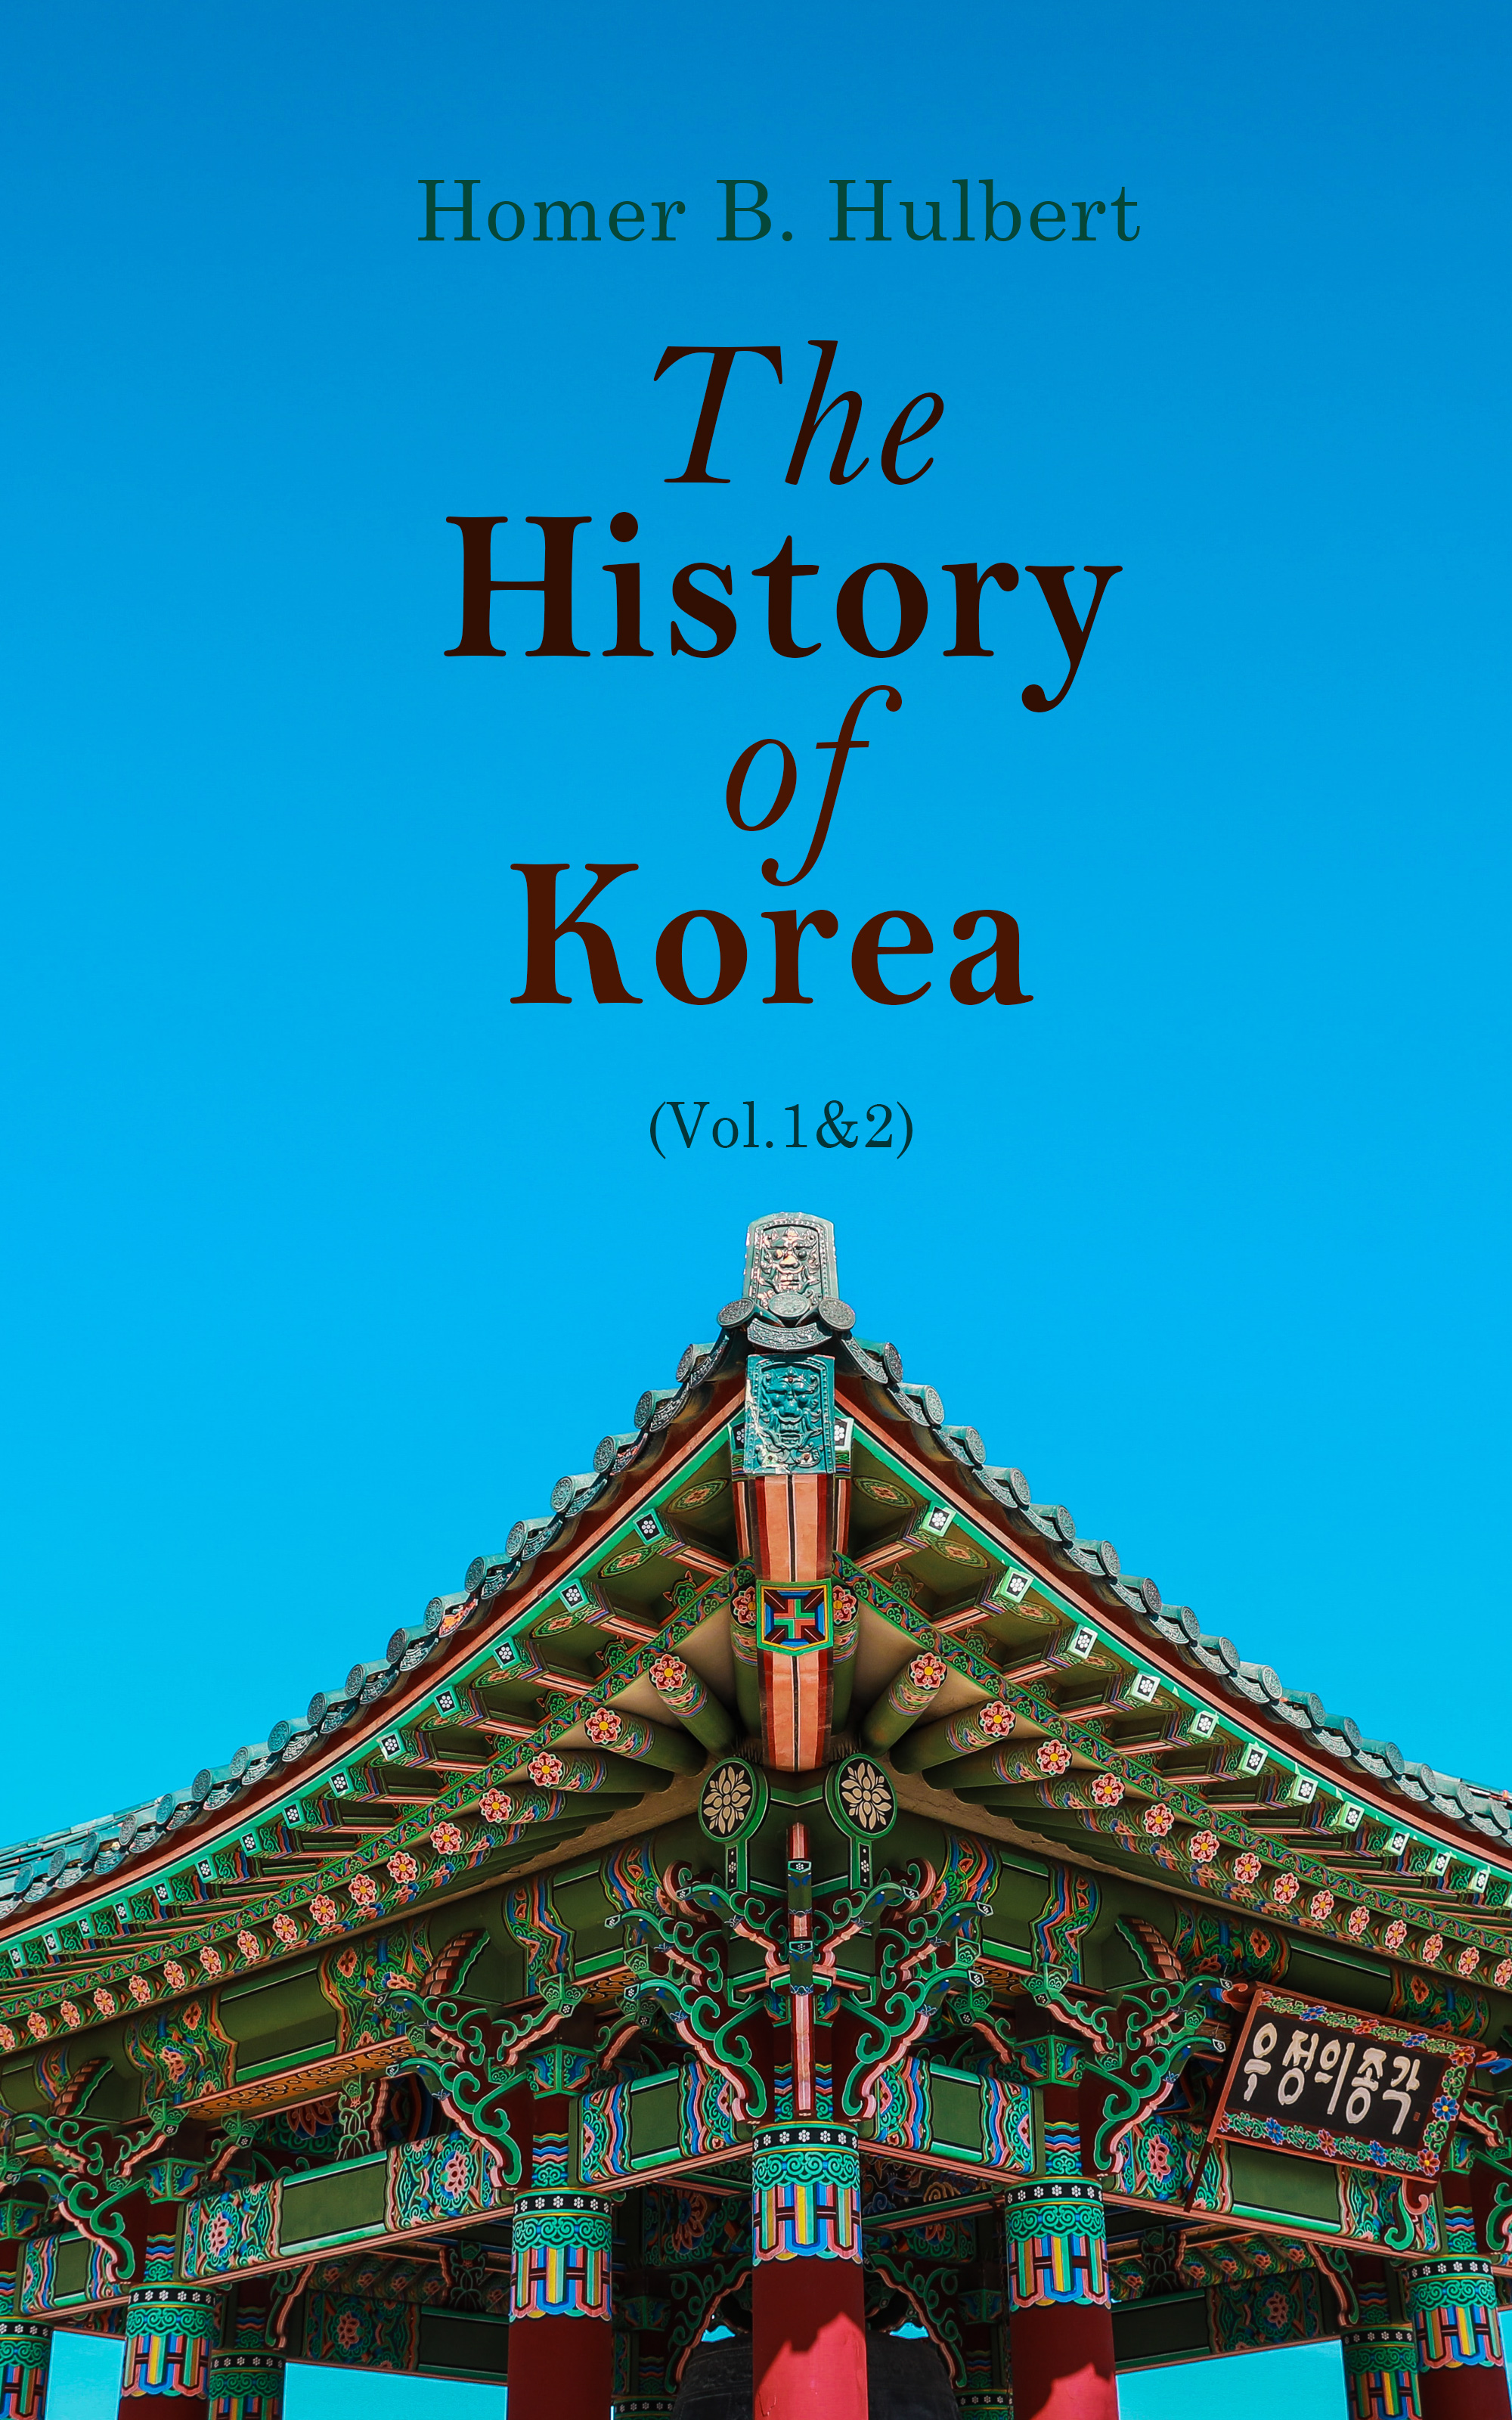 Homer B. Hulbert The History of Korea (Vol.1&2)